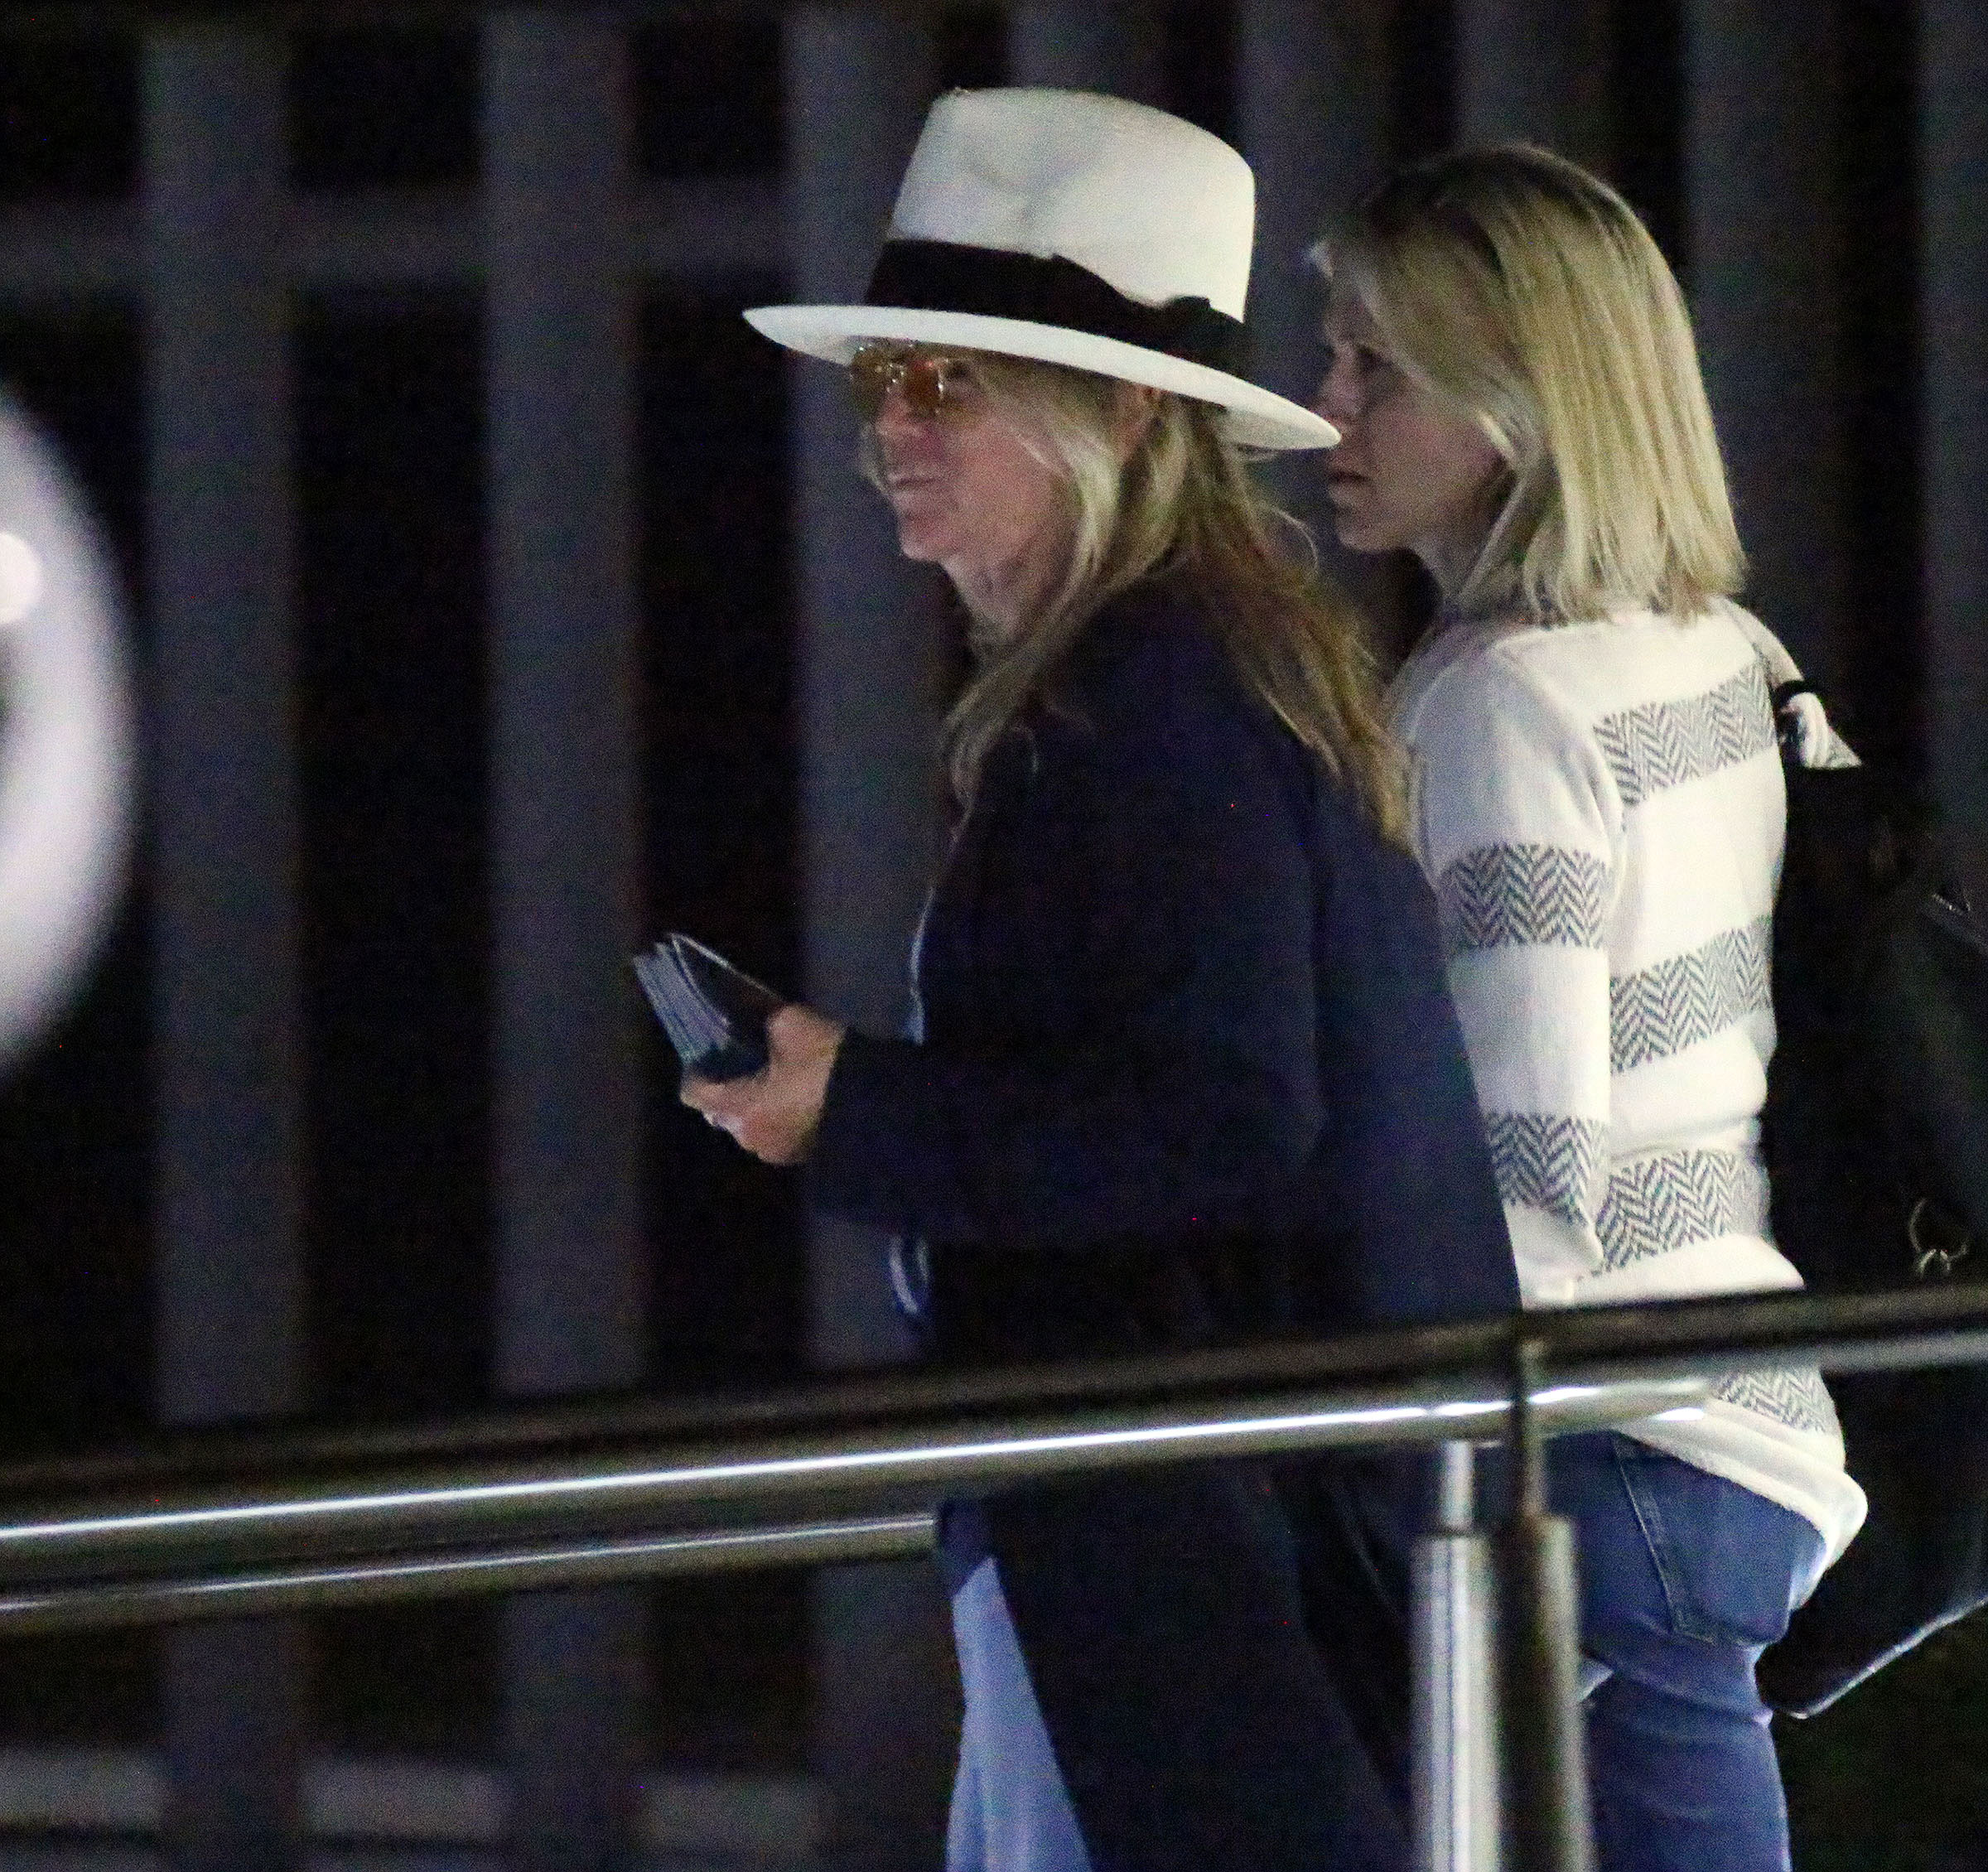 Jennifer Aniston Arrives in Cabo After Emergency Plane Landing - Jennifer Aniston arriving safely for their birthday party in Los Cabos, Mexico.